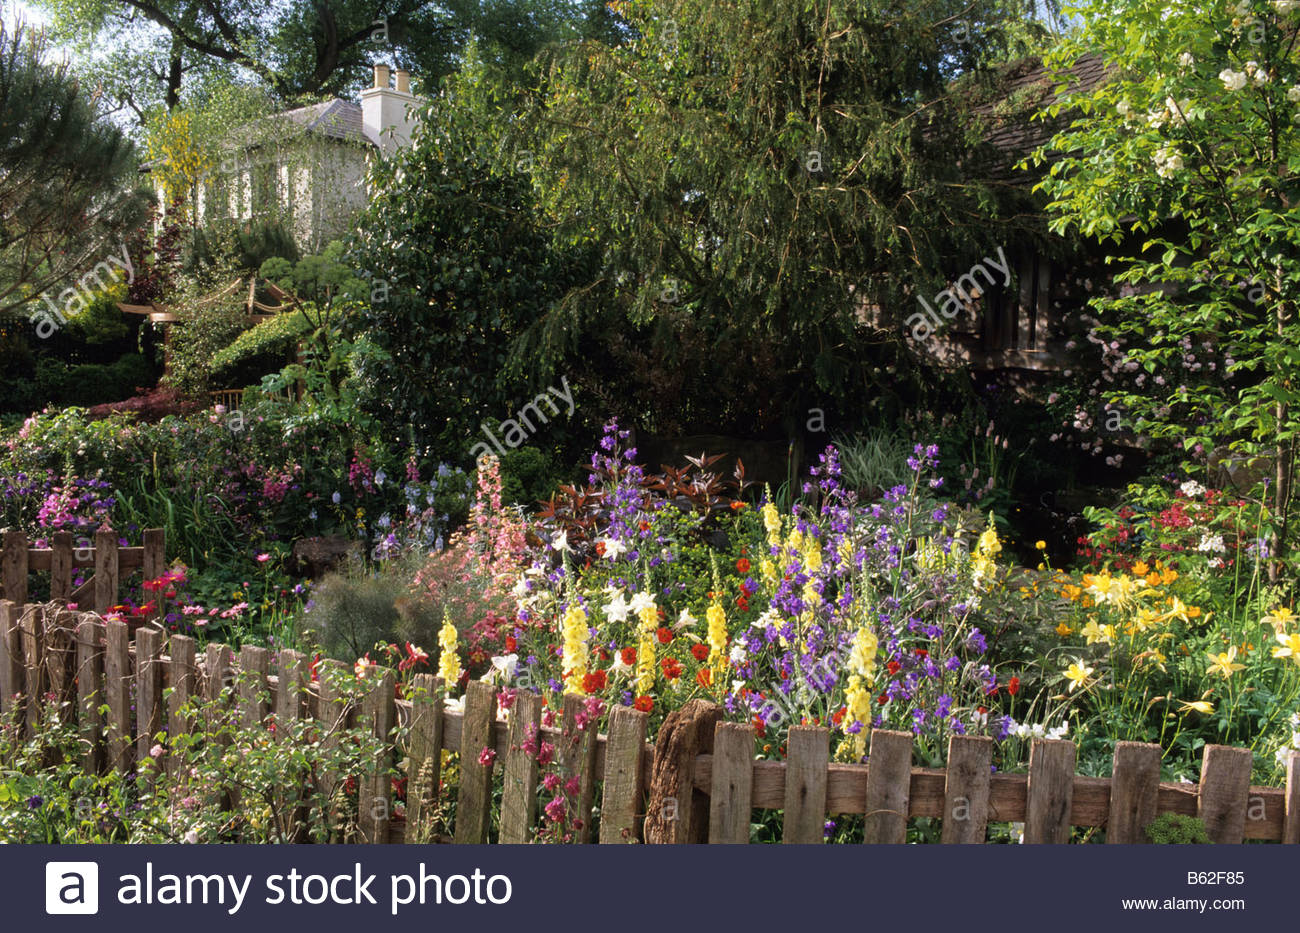 Chelsea fs 2002 design julin dowle cottage garden with colourful chelsea fs 2002 design julin dowle cottage garden with colourful summer flowering annuals and perennials and view through to hou izmirmasajfo